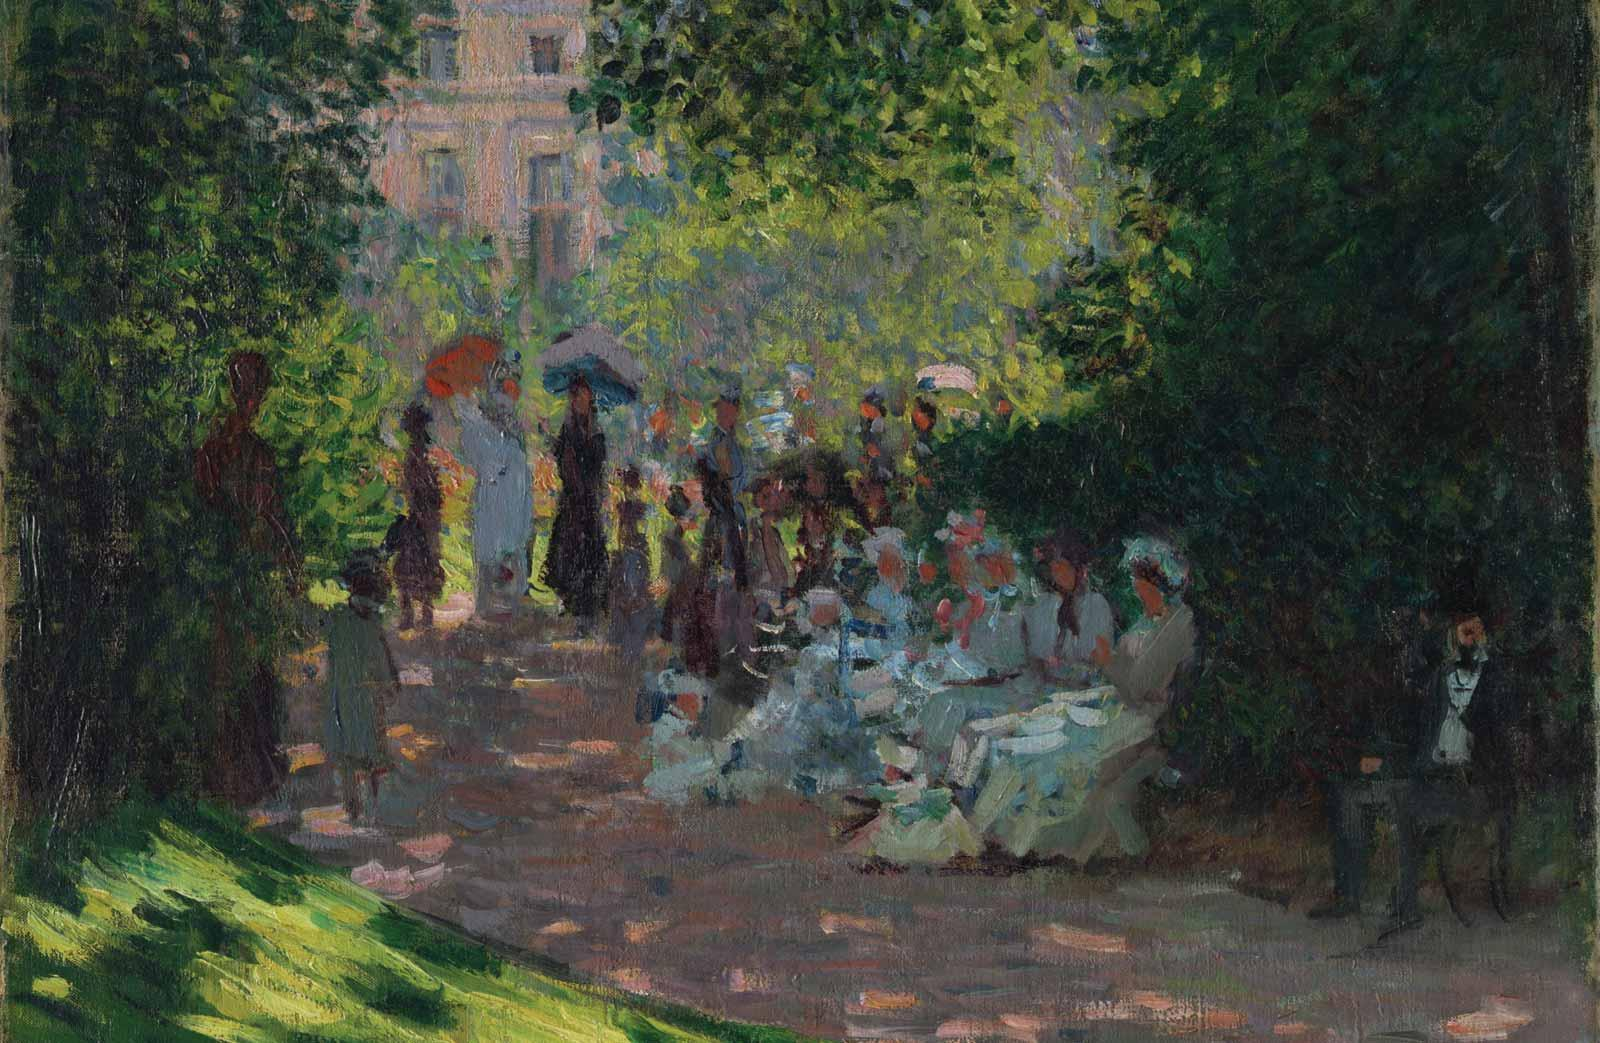 Claude Monet, The Parc Monceau, 1878.